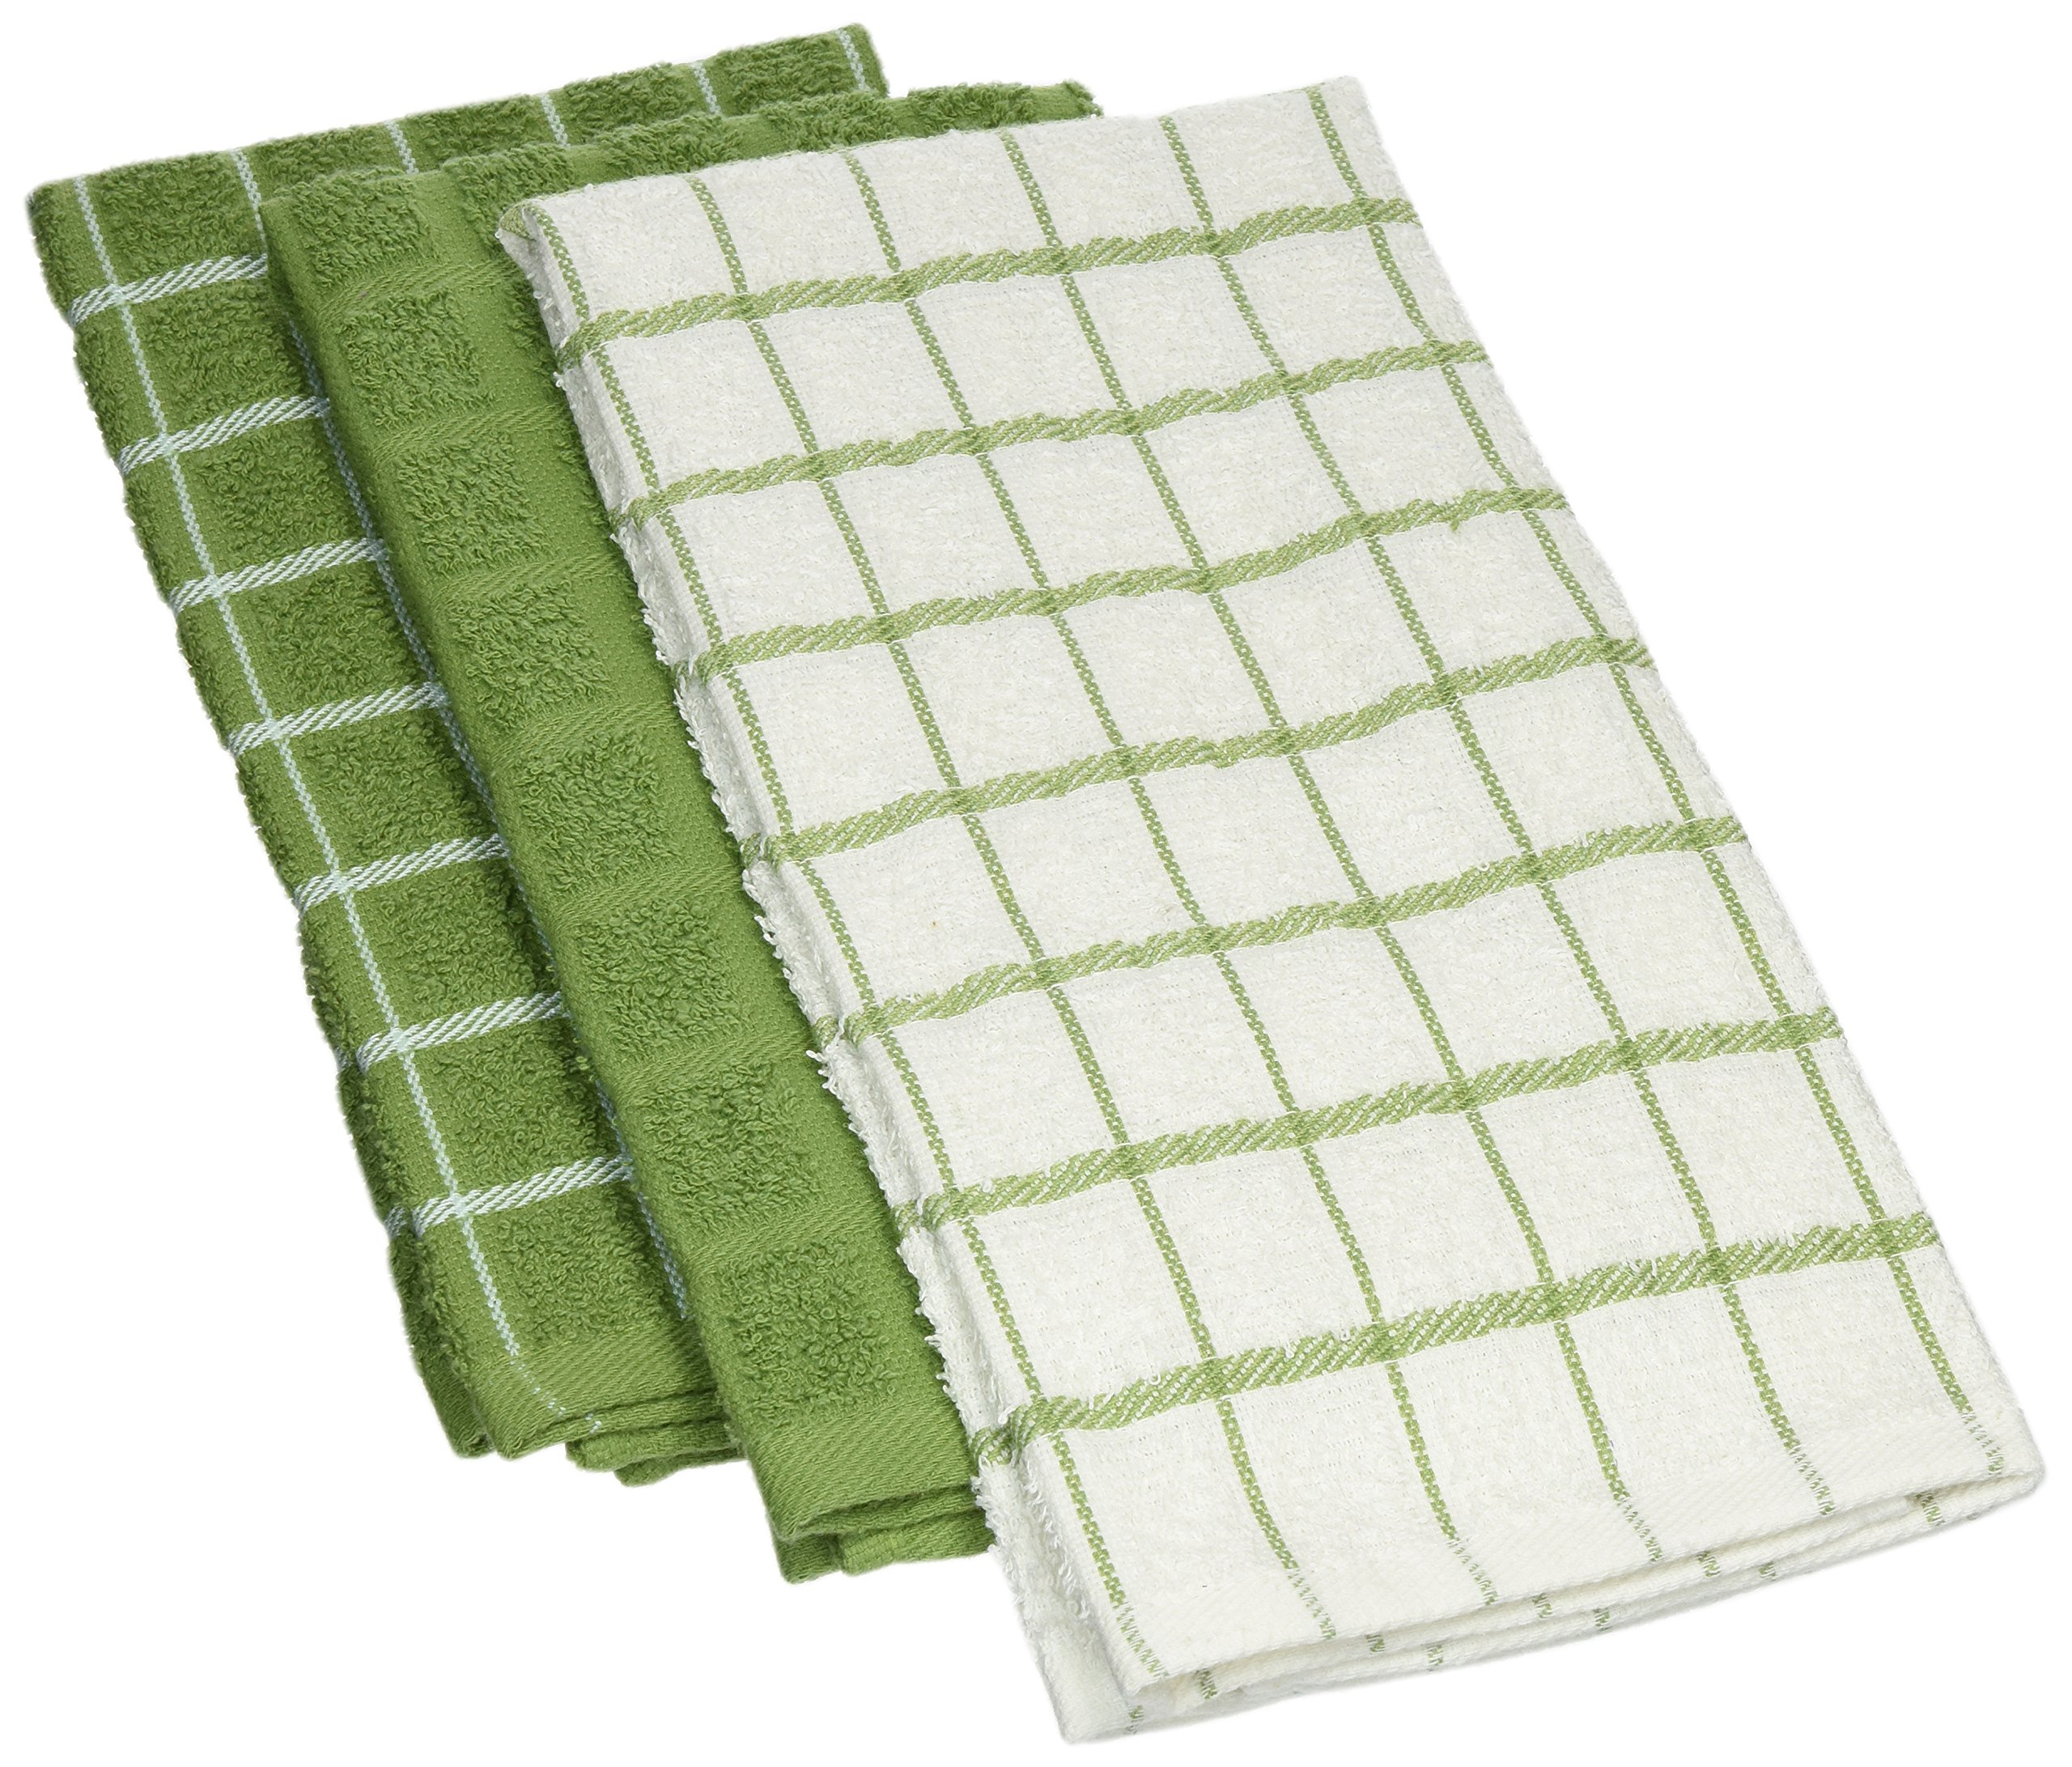 "Ritz 100% Cotton Terry Kitchen Dish Towels, Highly Absorbent, 25"" x 15"", 3-Pack, Cactus Green by Ritz (Image #1)"